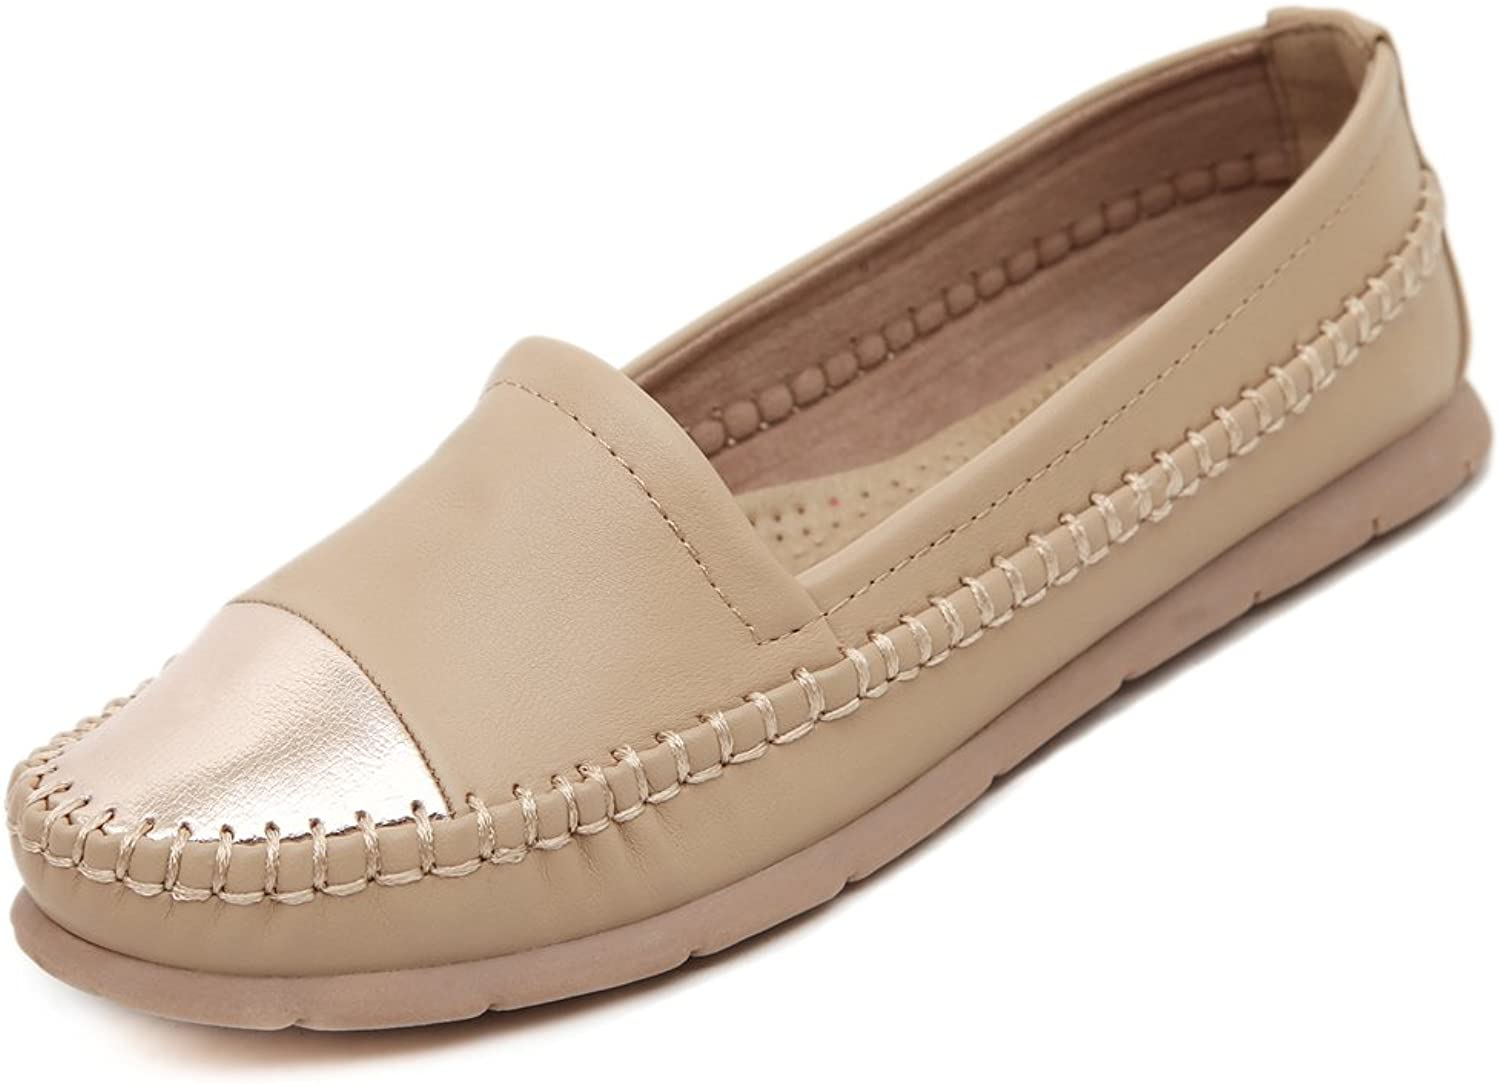 Adelina Women's Classical Two-toned Boat Loafer shoes Driving Moccasin Apricot 40 EU   8.5-9 US